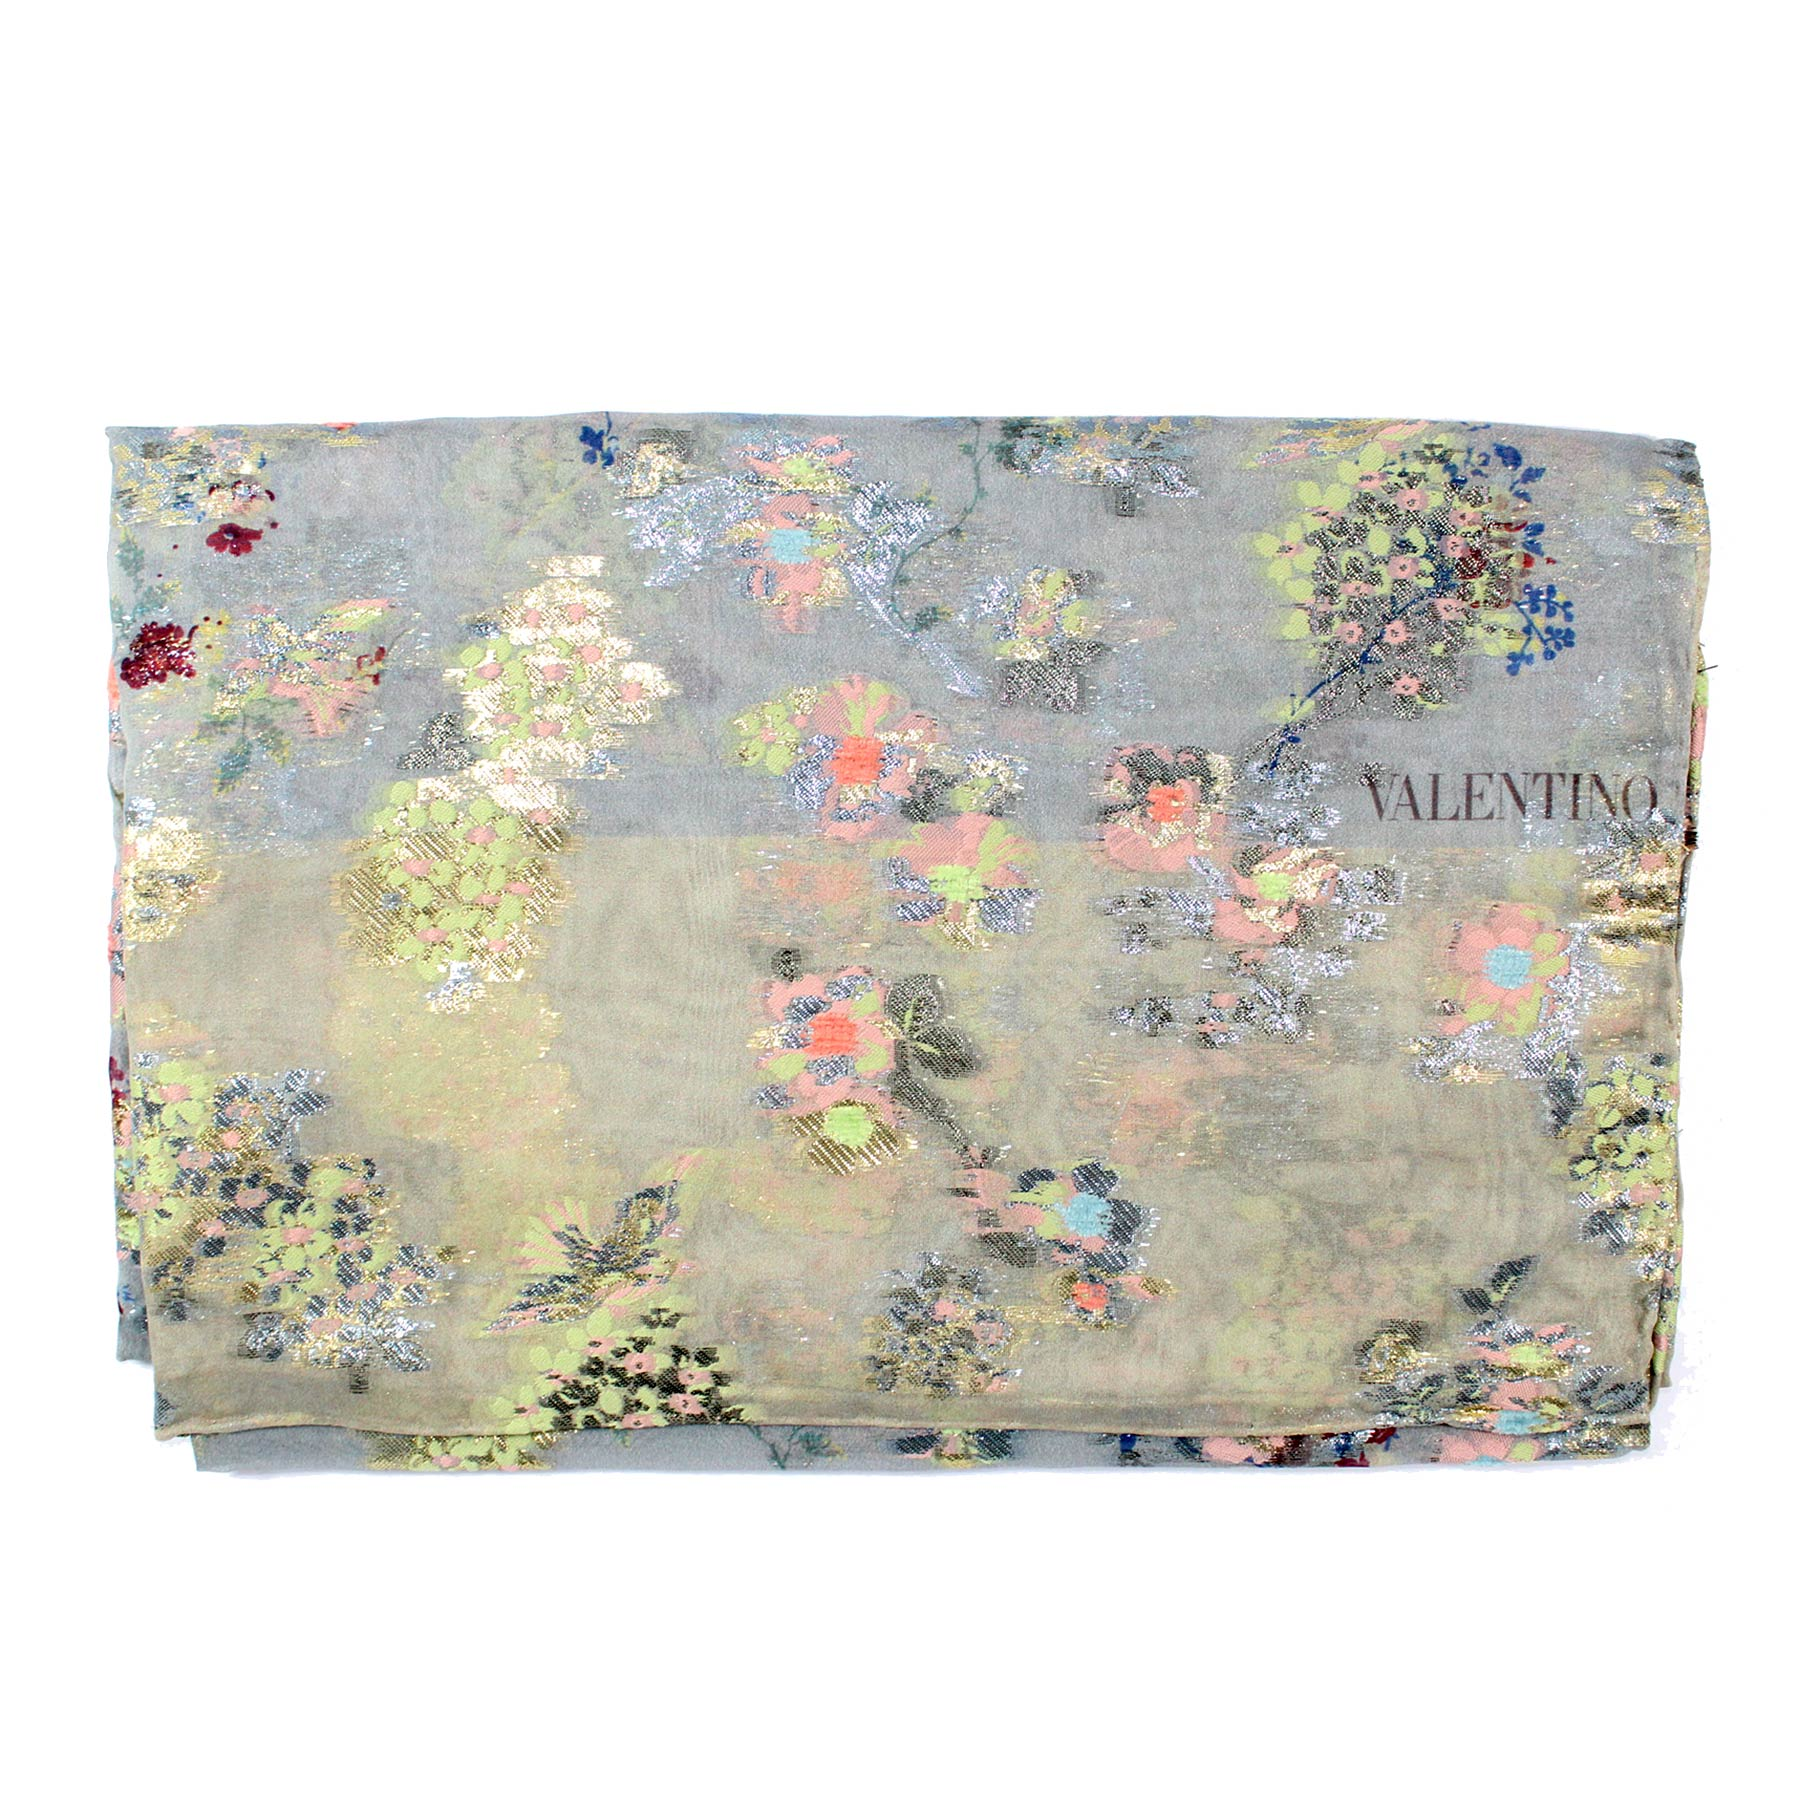 Valentino Scarf Gray Pink Floral Design Metal-Silk Blend Women Shawl BLACK FRIDAY SALE